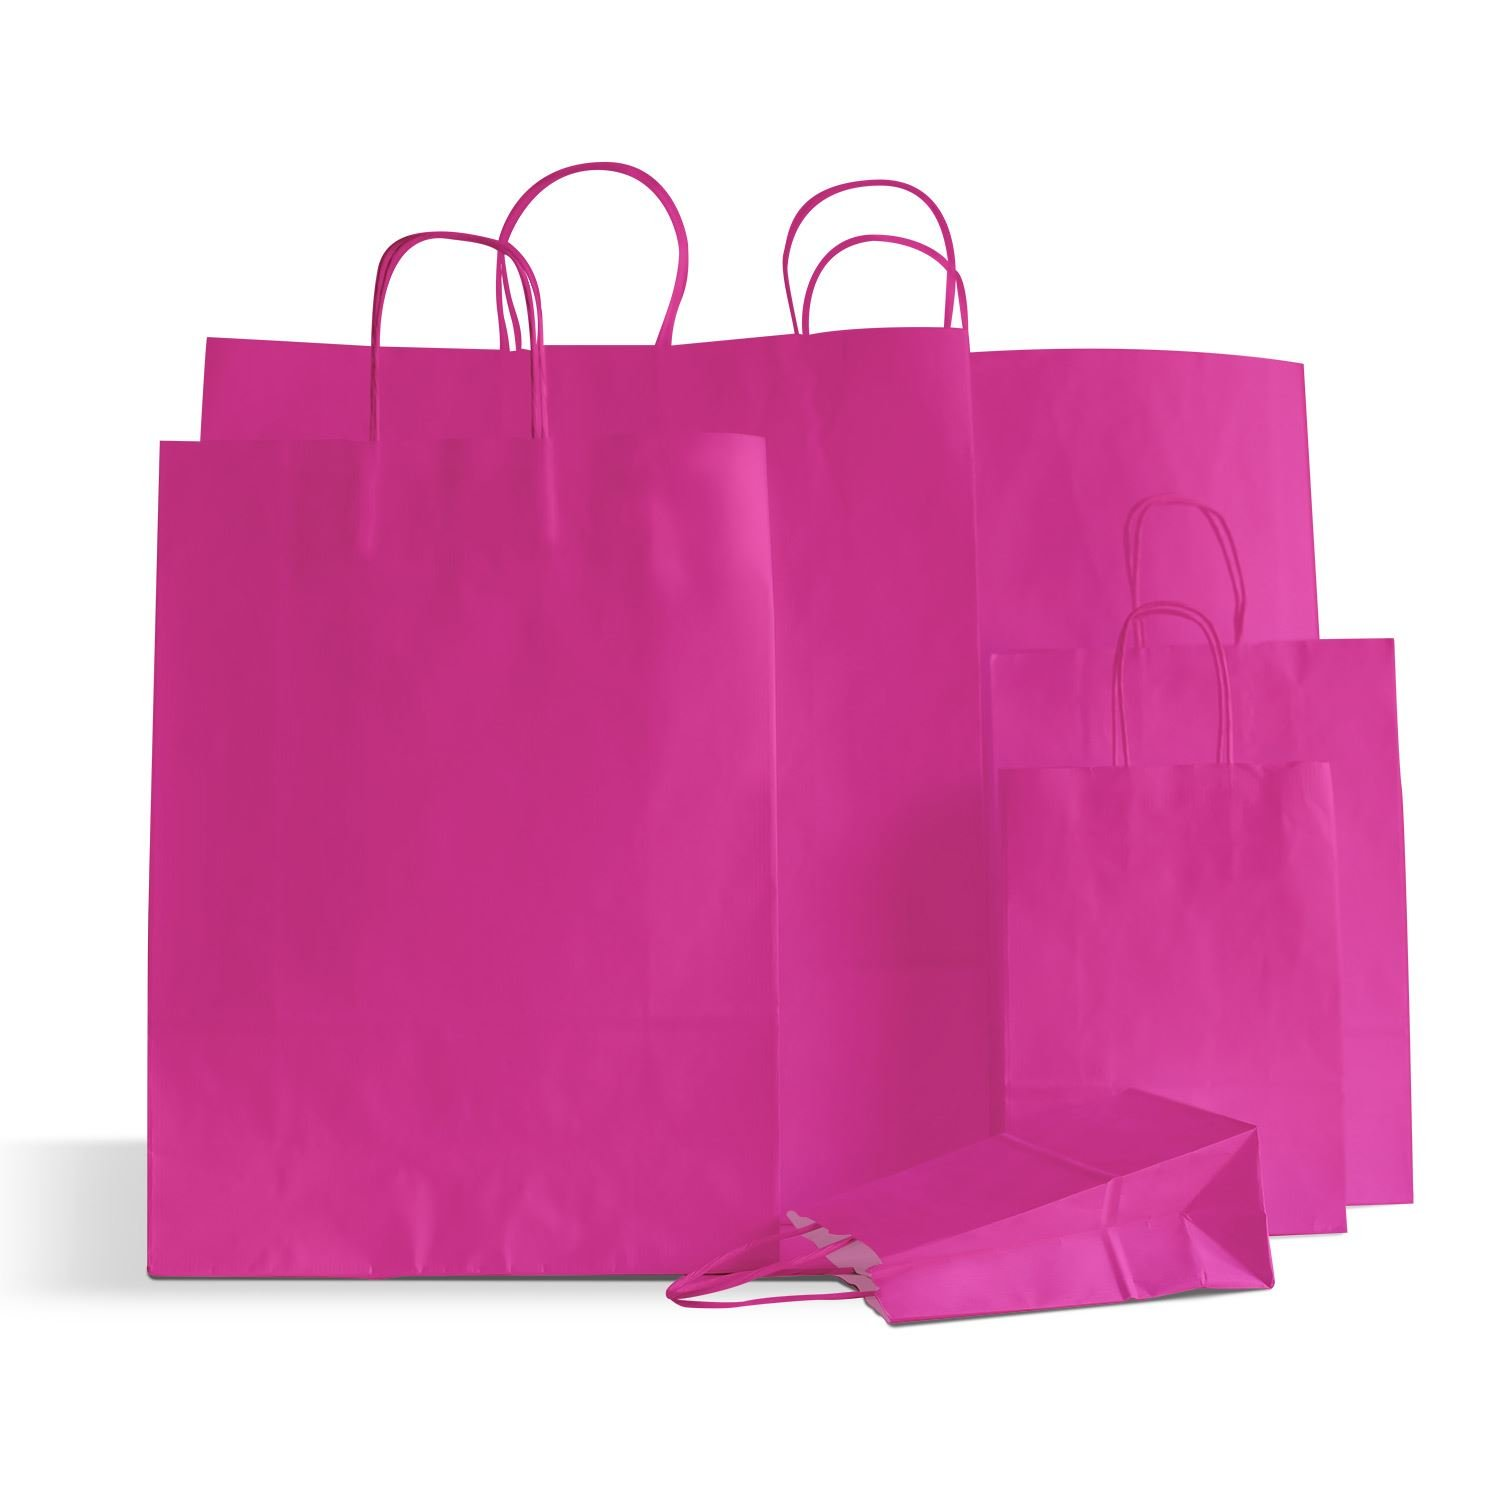 10 x Shocking Pink Party Paper Bags Twisted Handles 15x20x8cm Birthday Loot Gift Bags Carrier Bags Online